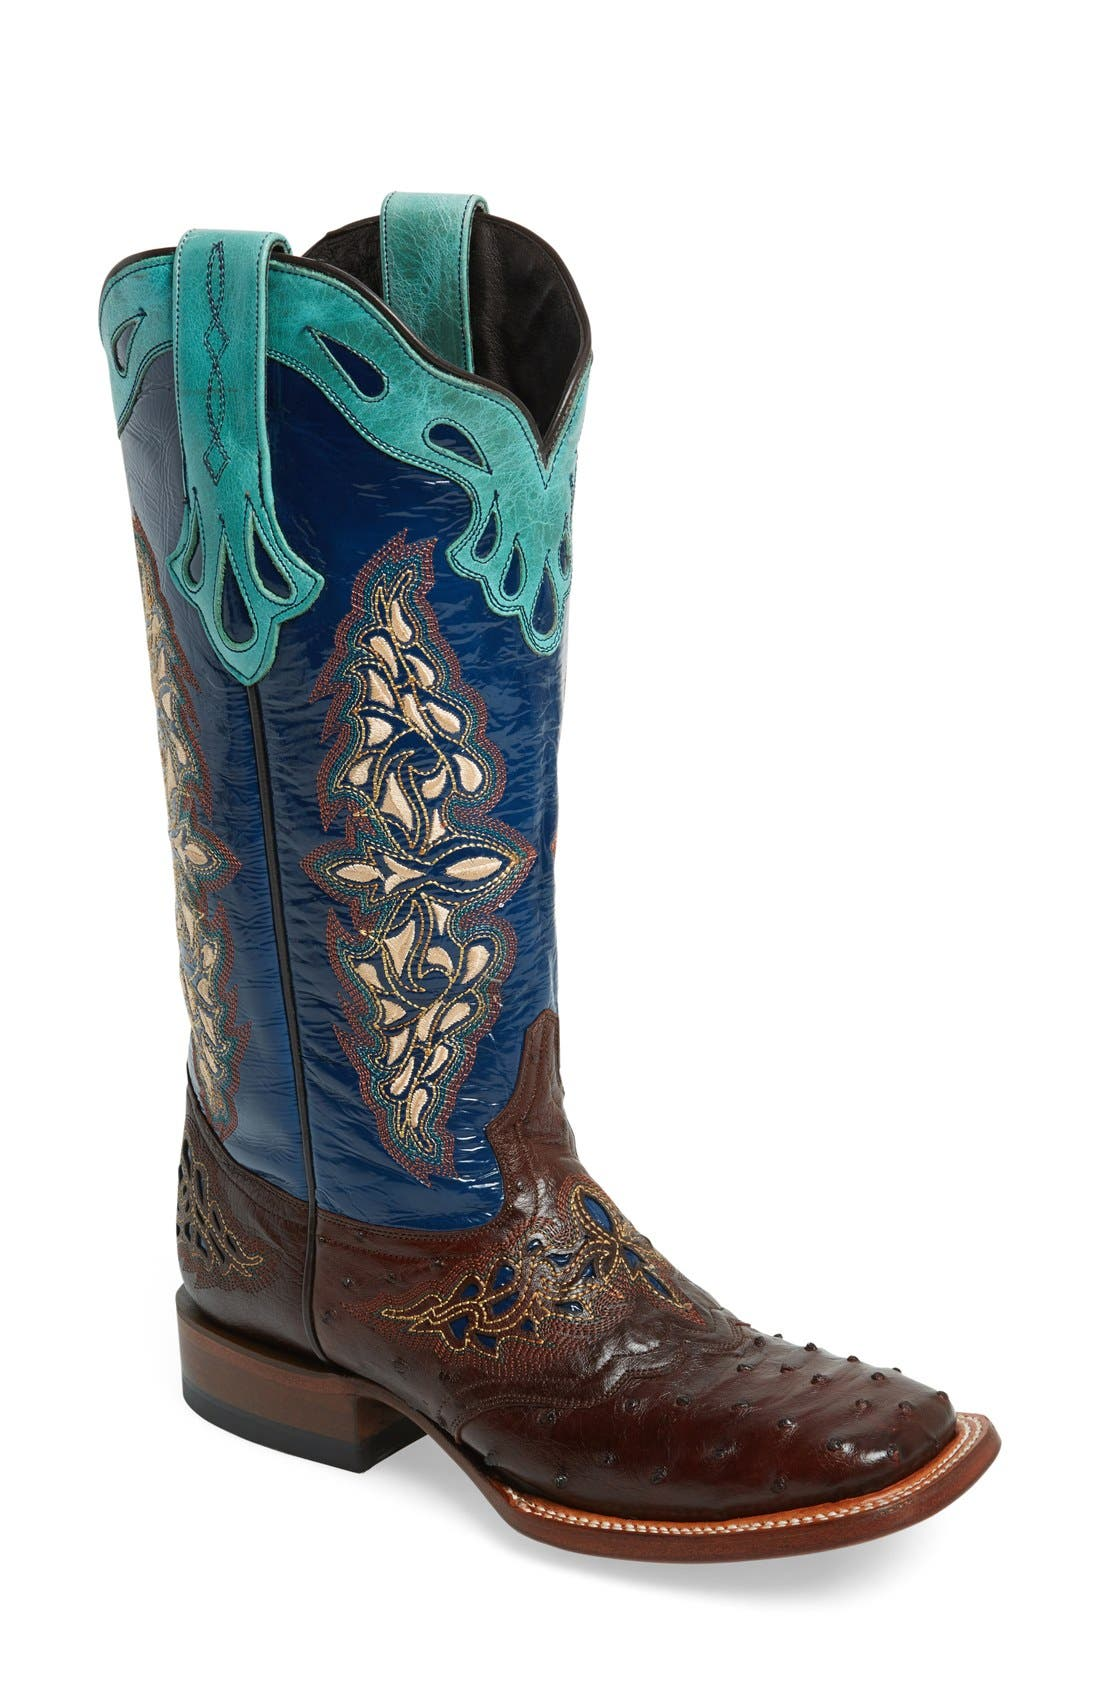 Alternate Image 1 Selected - LuccheseWestern Square ToeBoot (Women)